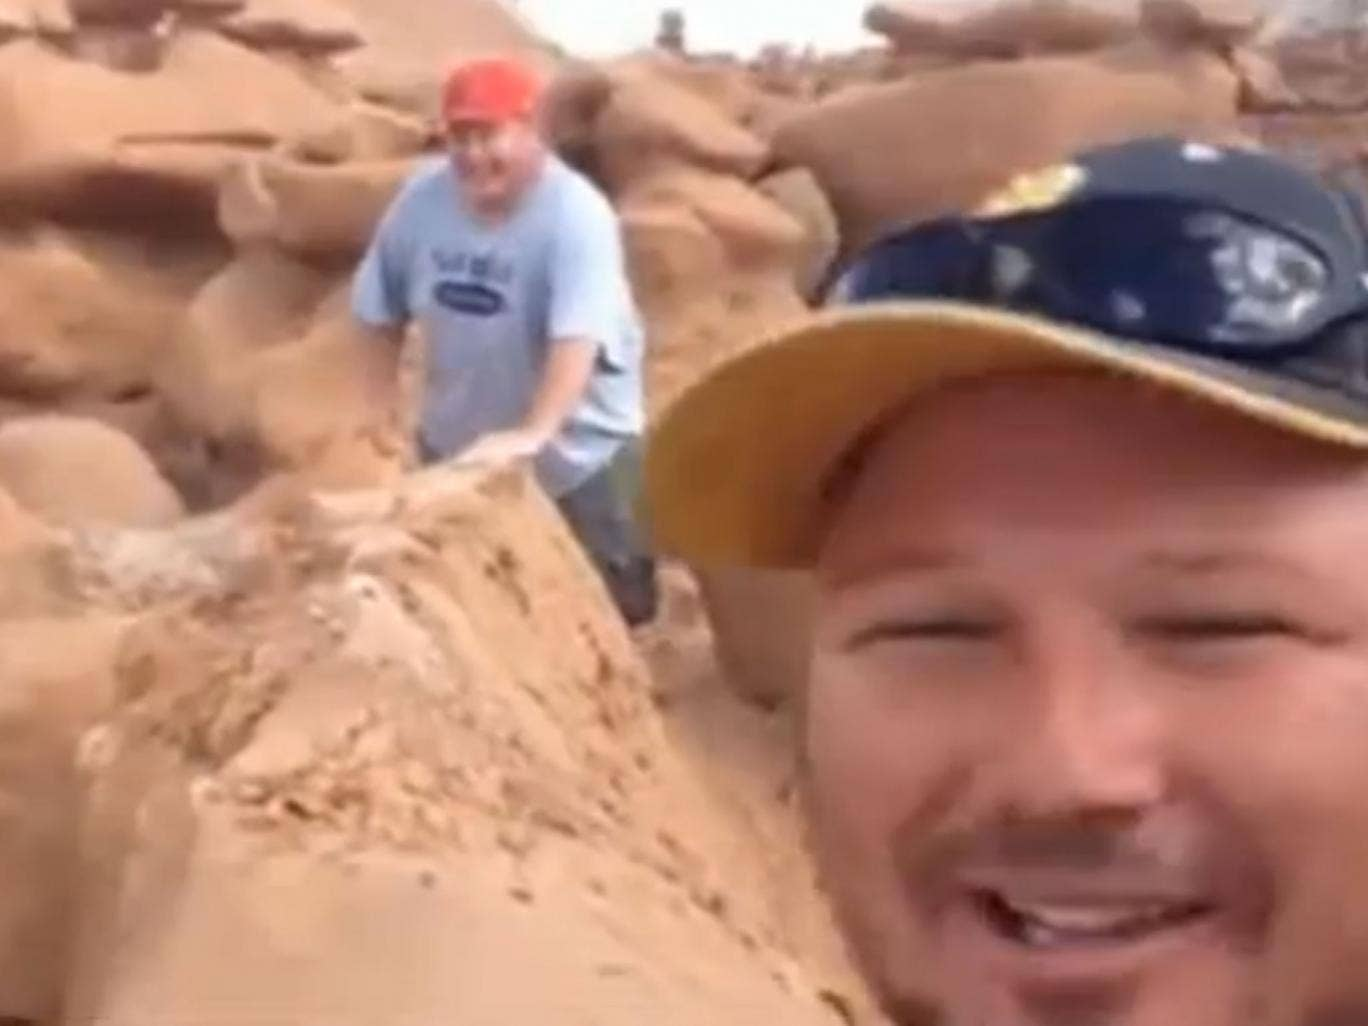 A group of hikers who high-fived each other and celebrated after toppling a 200-million-year-old rock formation in a Utah park are facing possible felony charges after a video of them pushing the formation over was posted on YouTube.